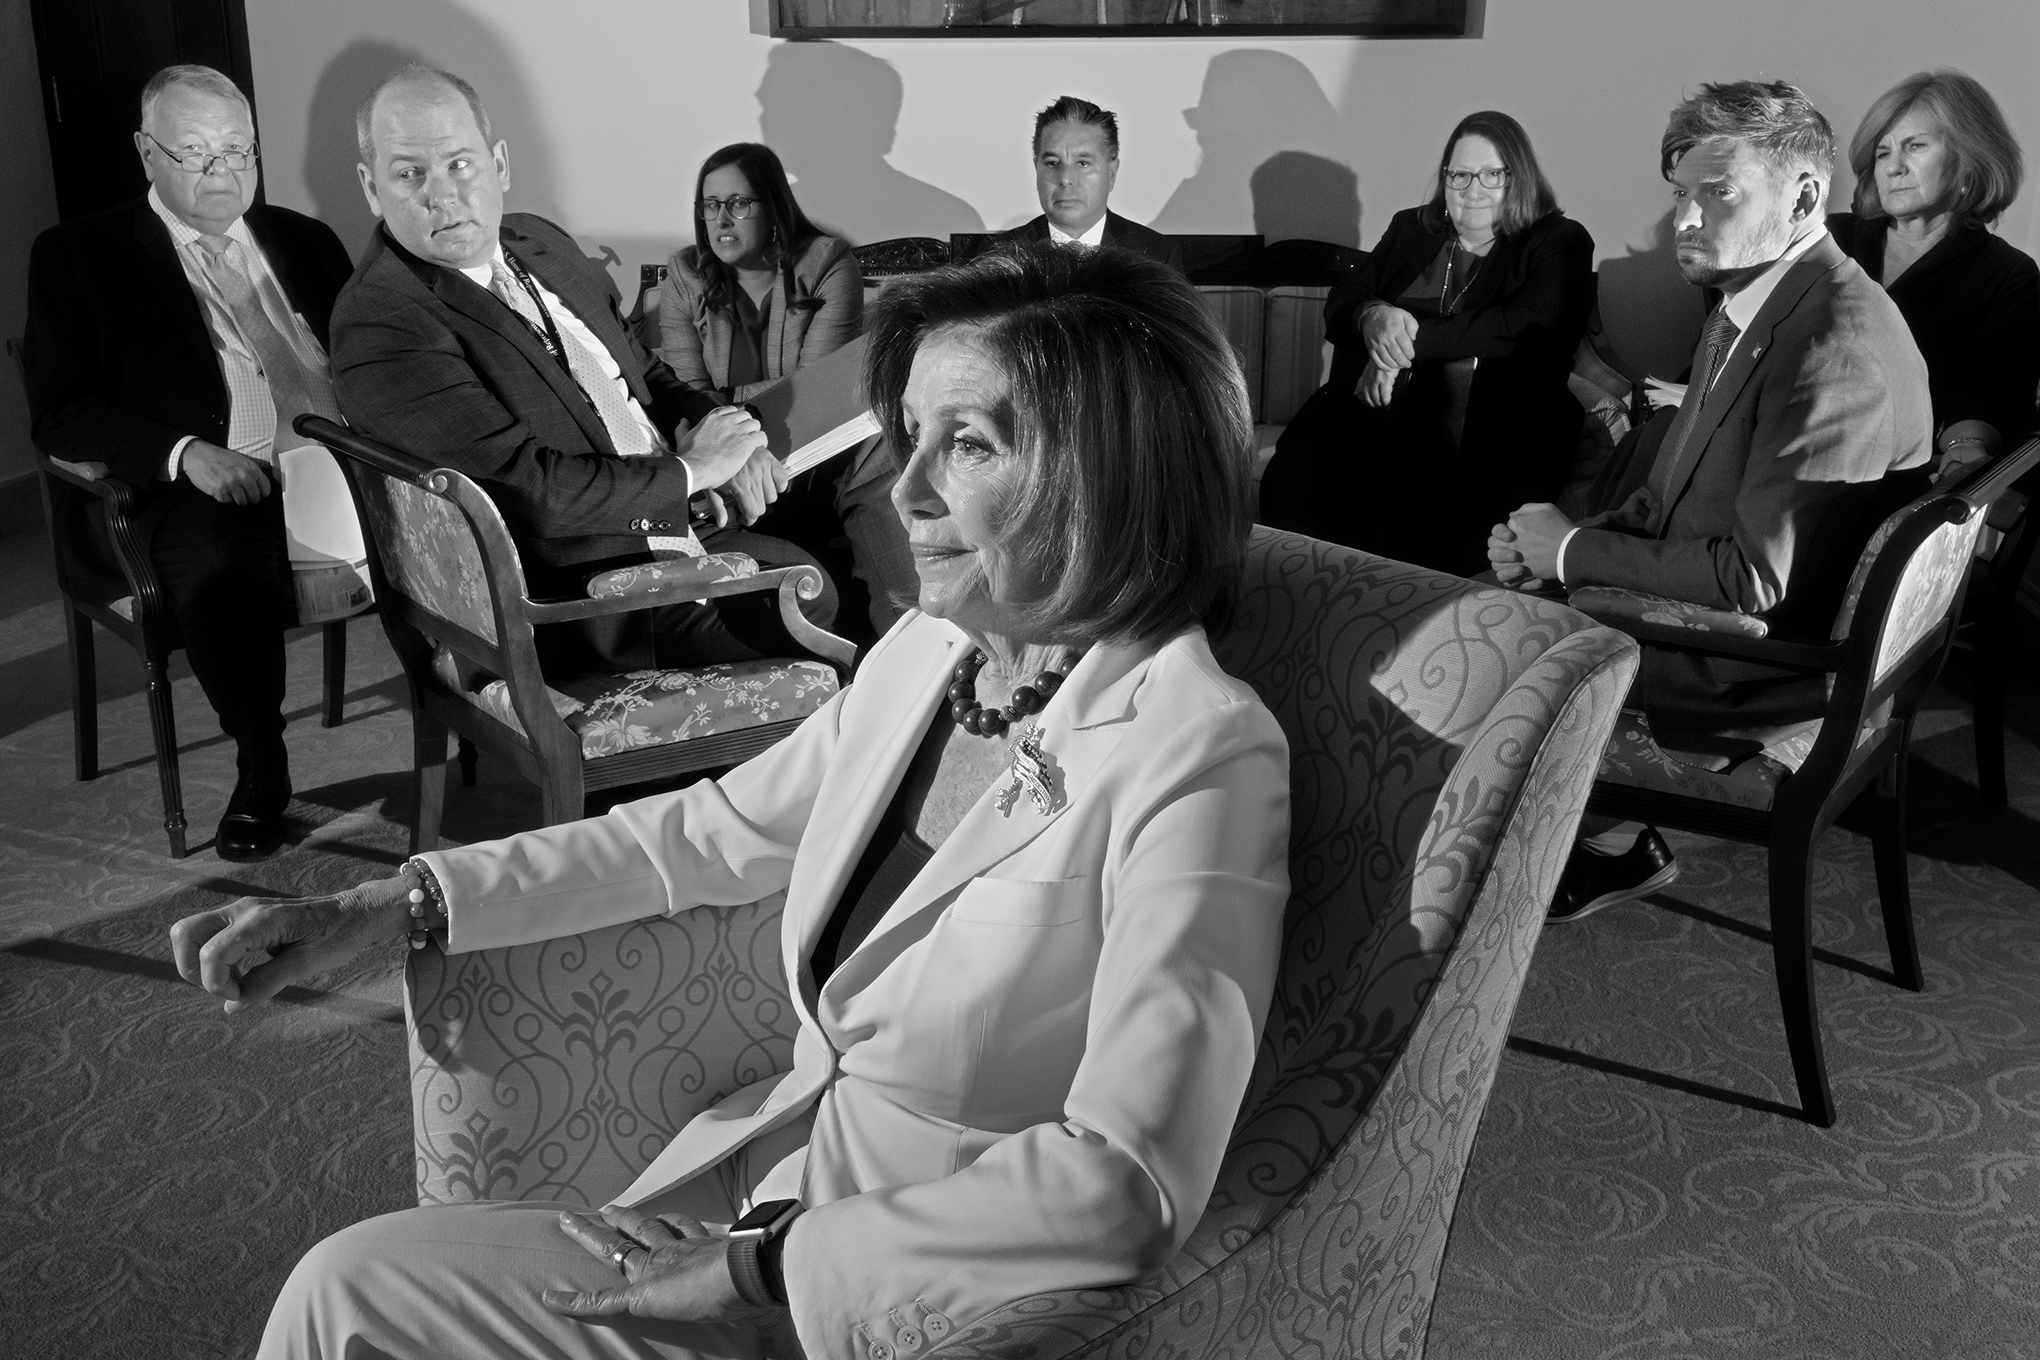 Pelosi meets with her staff on Capitol Hill on December 5.